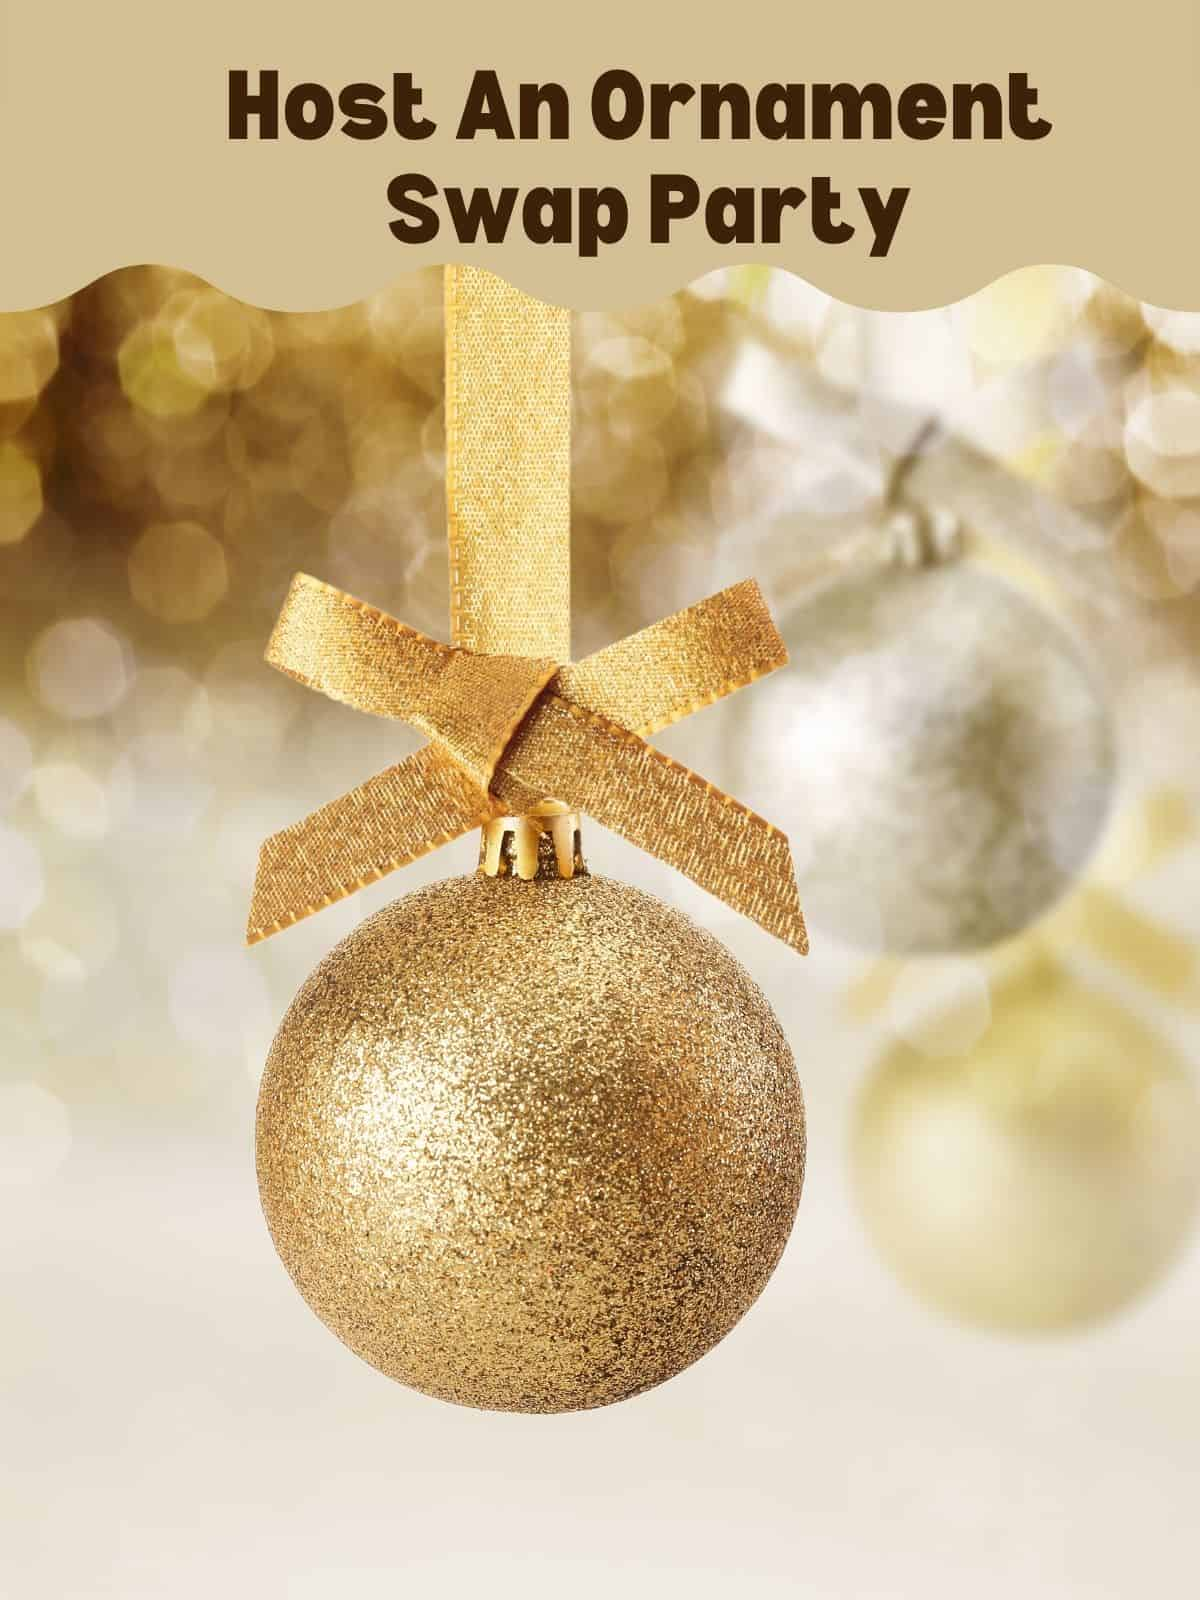 Host An Ornament Swap Party with gold and silver christmas balls